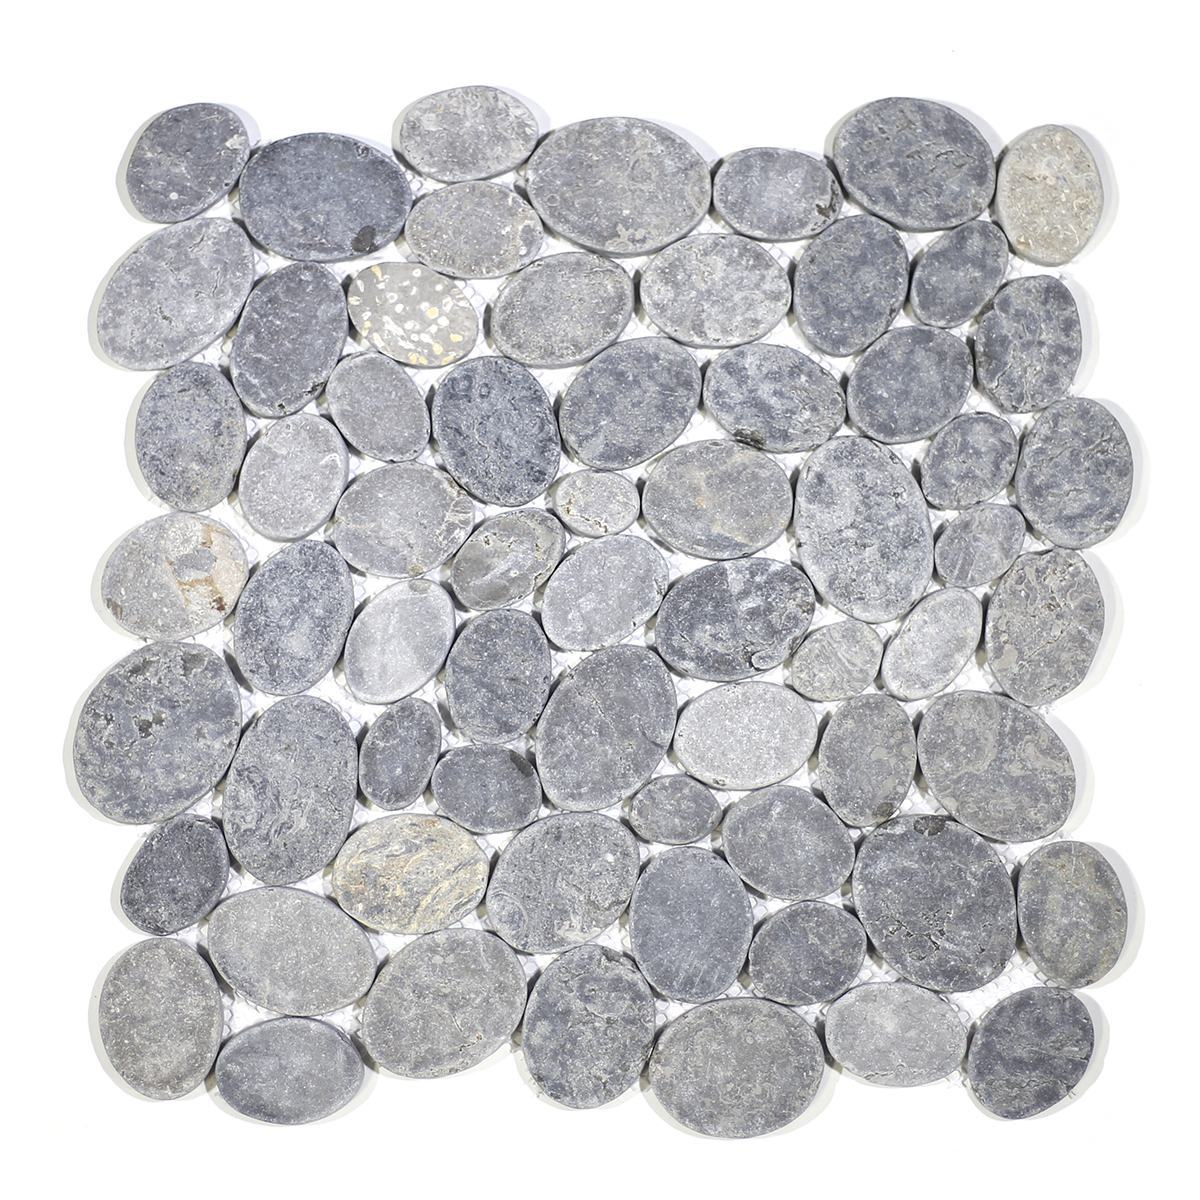 COIN MARBLE TILE GREY TUMBLED STONE PEBBLE